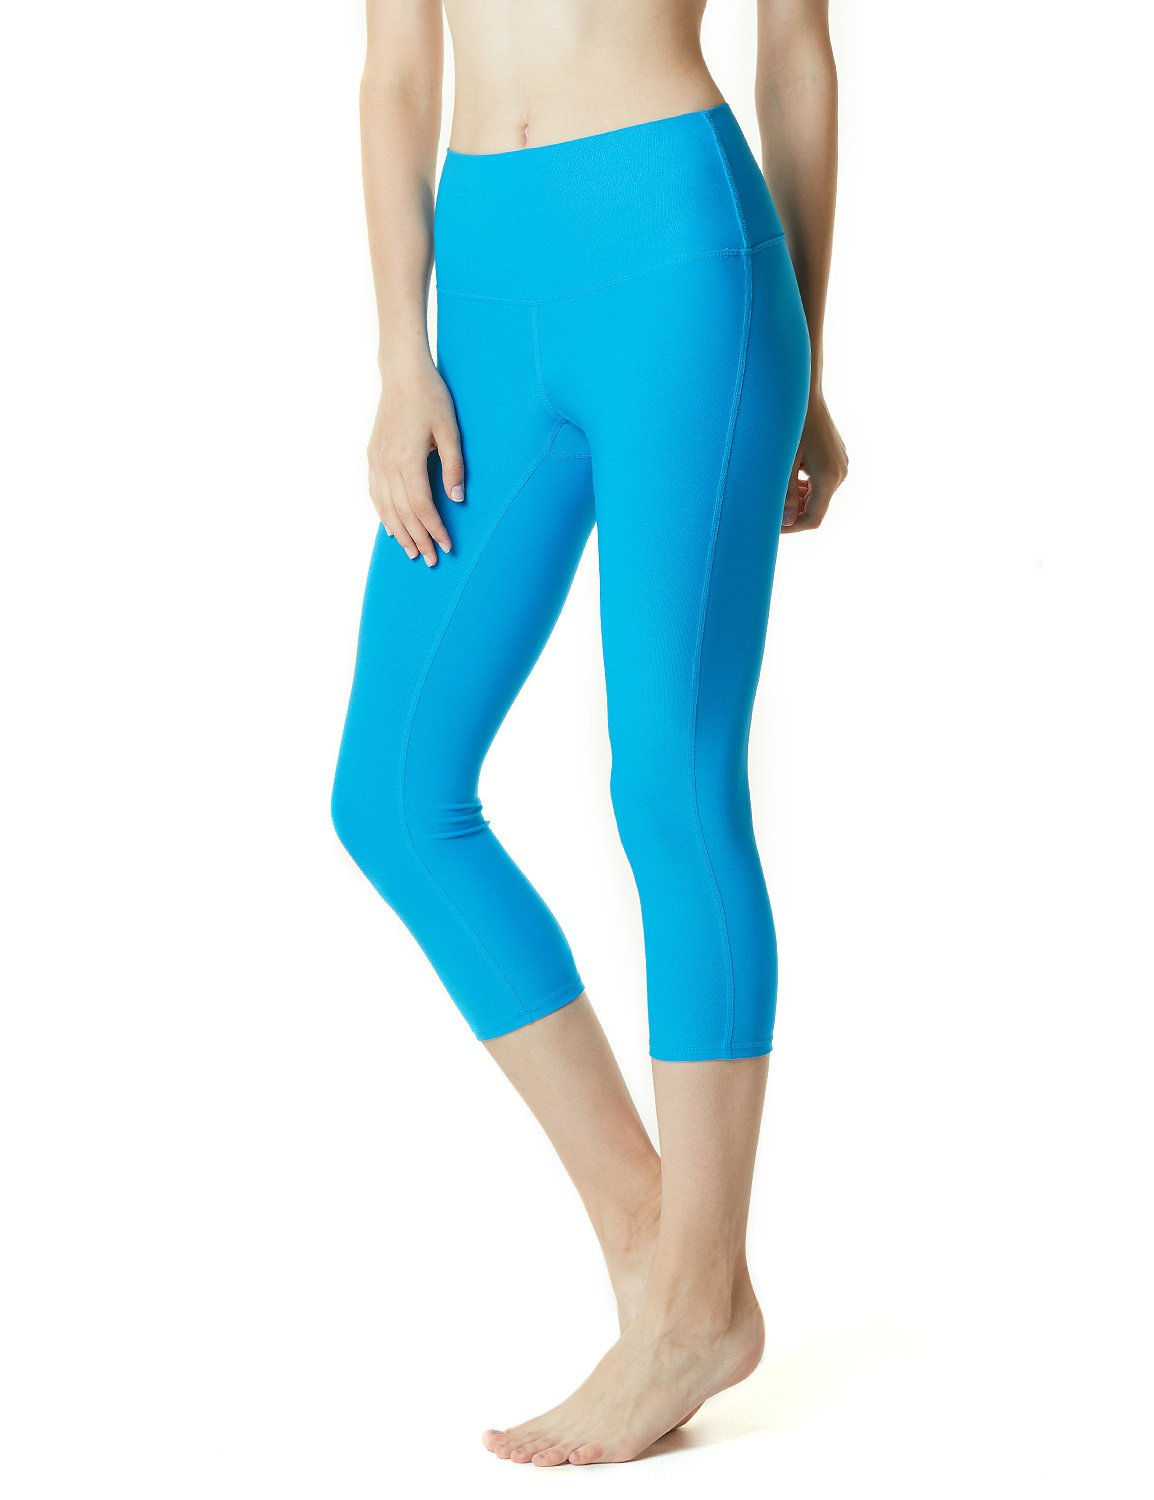 Tesla TM-FYP32-RYB_2X-Large Yoga 21'' Capri High-Waist Tummy Control Pants w Pocket FYP32